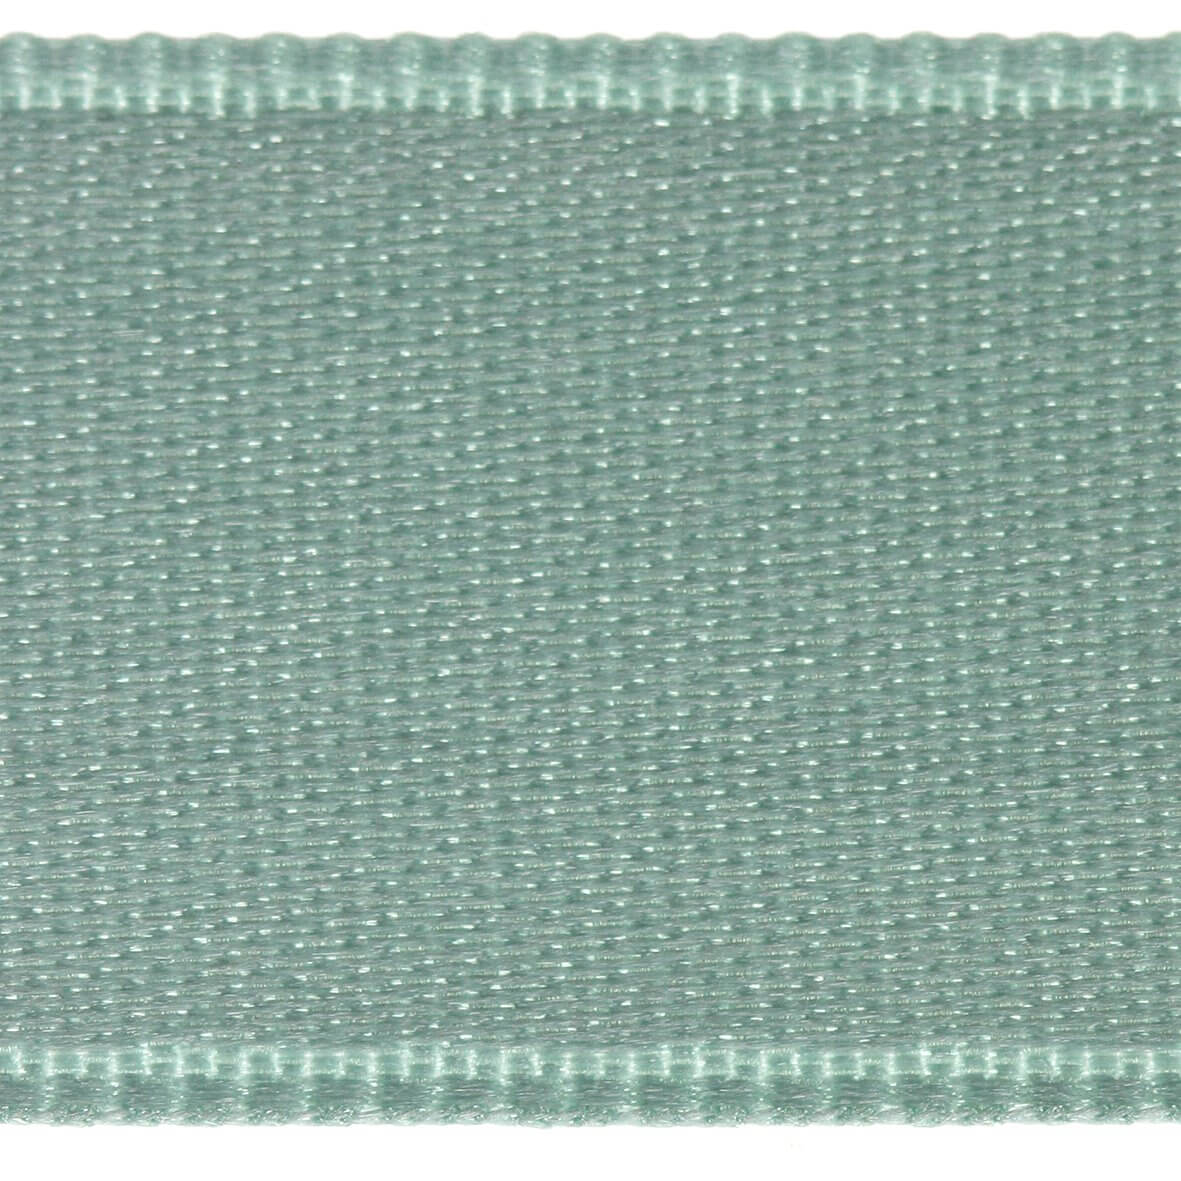 Dusky Jade Col. 310 - 3mm Satab Satin Ribbon